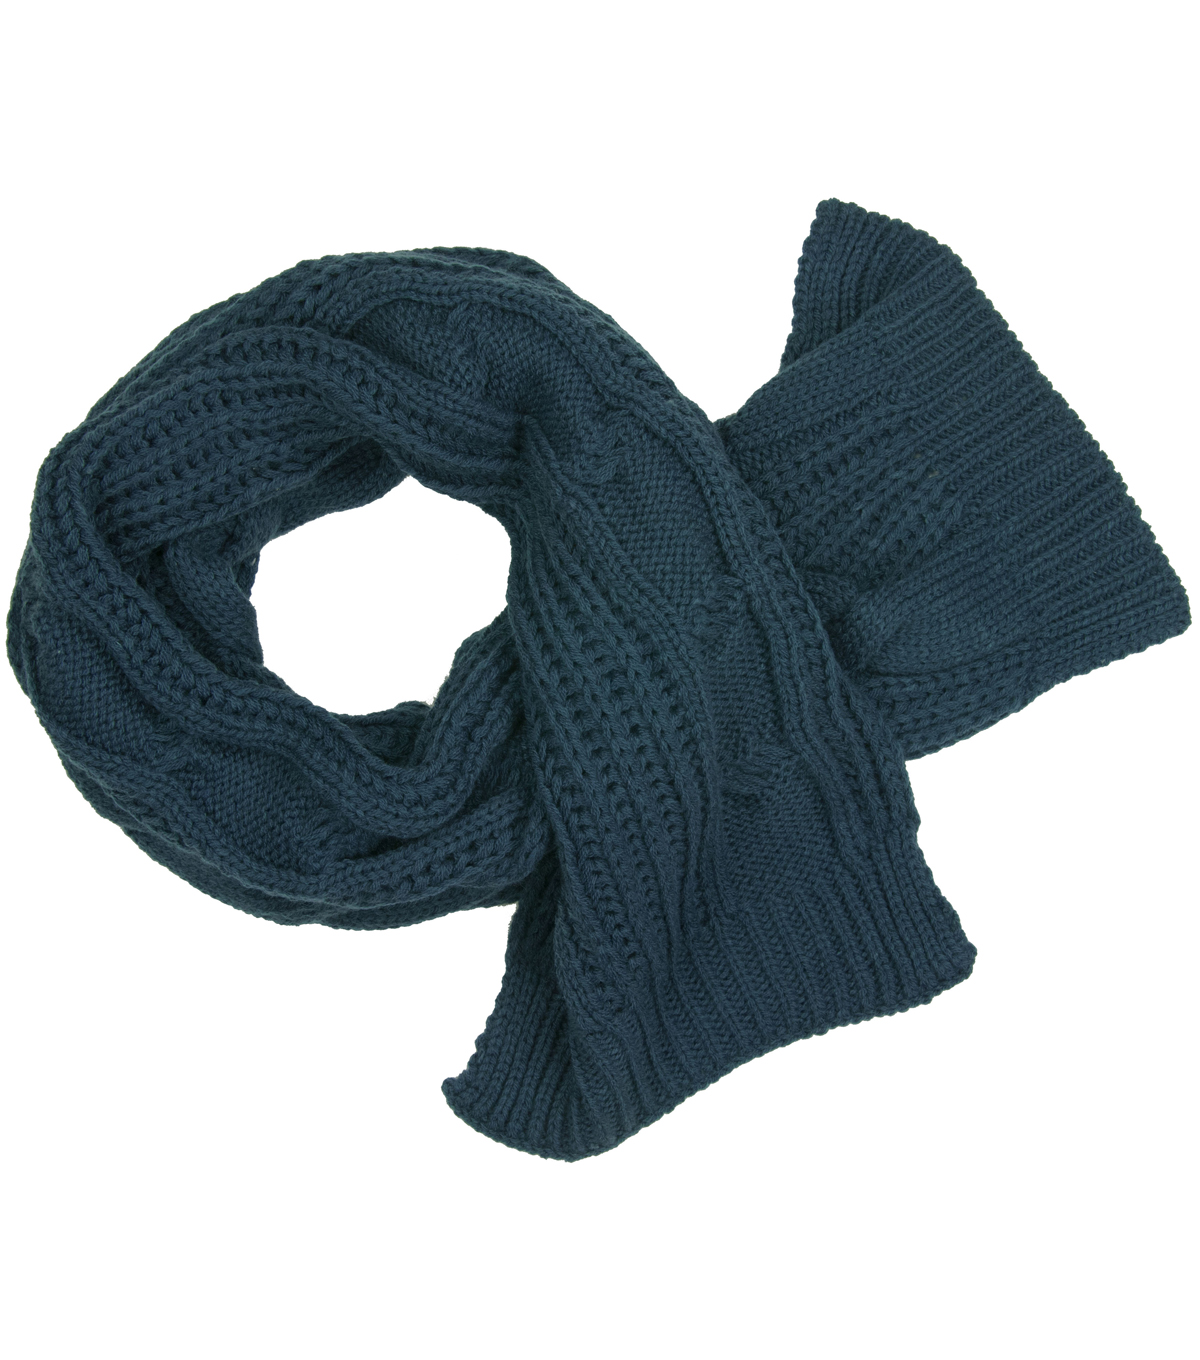 Laliberi Winter Knit Cable Scarf In Teal